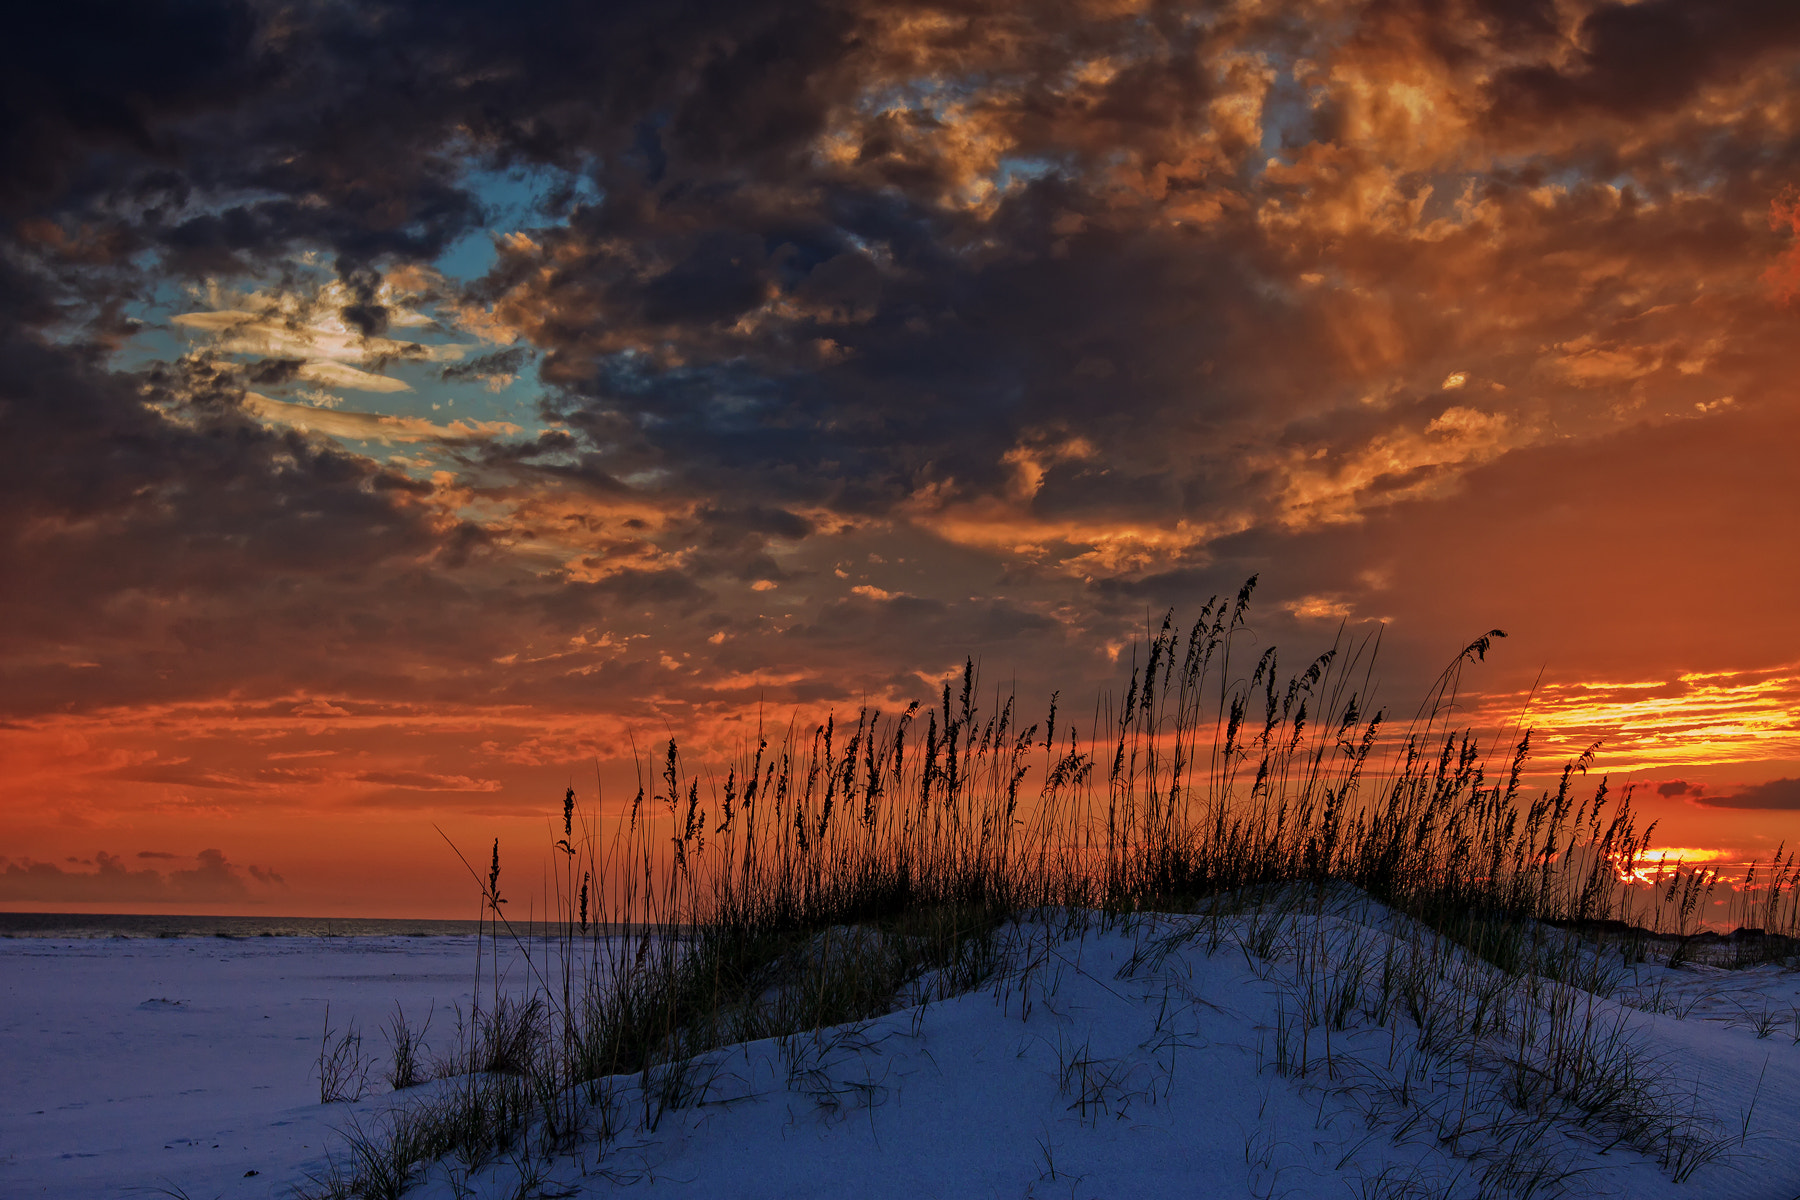 Photograph Serenity  by Scott Evers on 500px